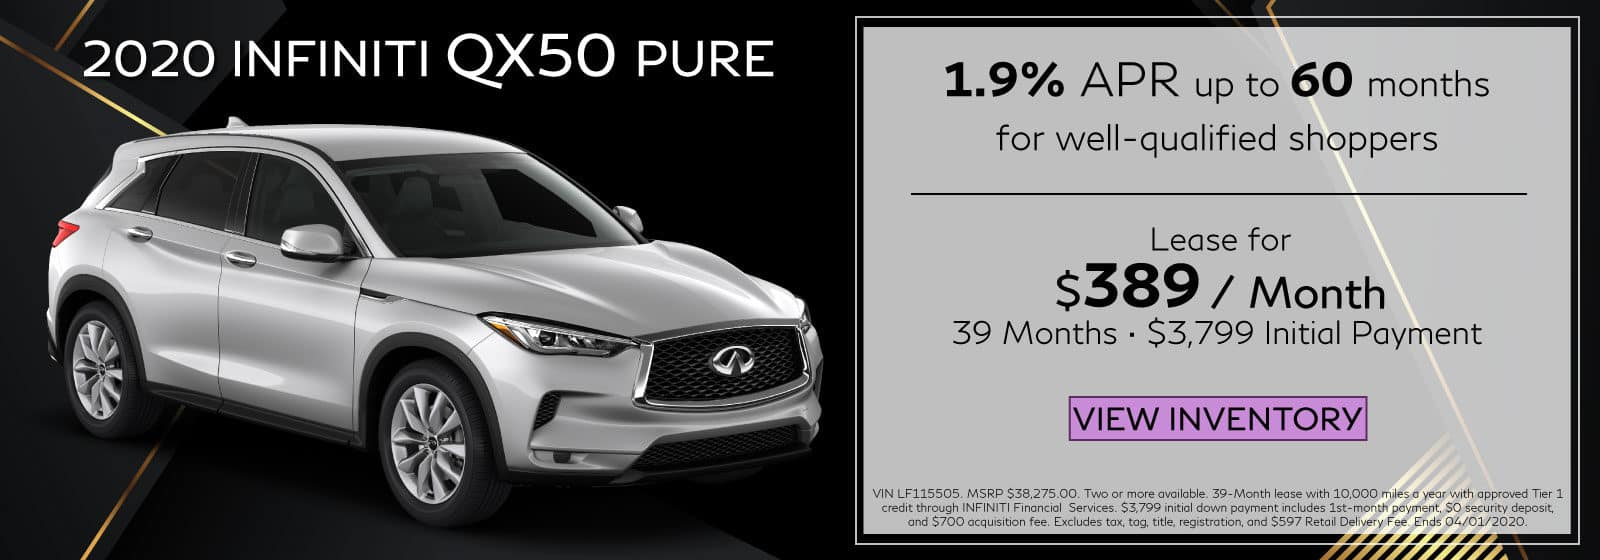 2020 QX50 PURE. Lease for $389 a month for 39 months. $3,799 initial payment. OR 1.9% APR for 60 months. Grey QX50 on a black abstract background. View Inventory button.